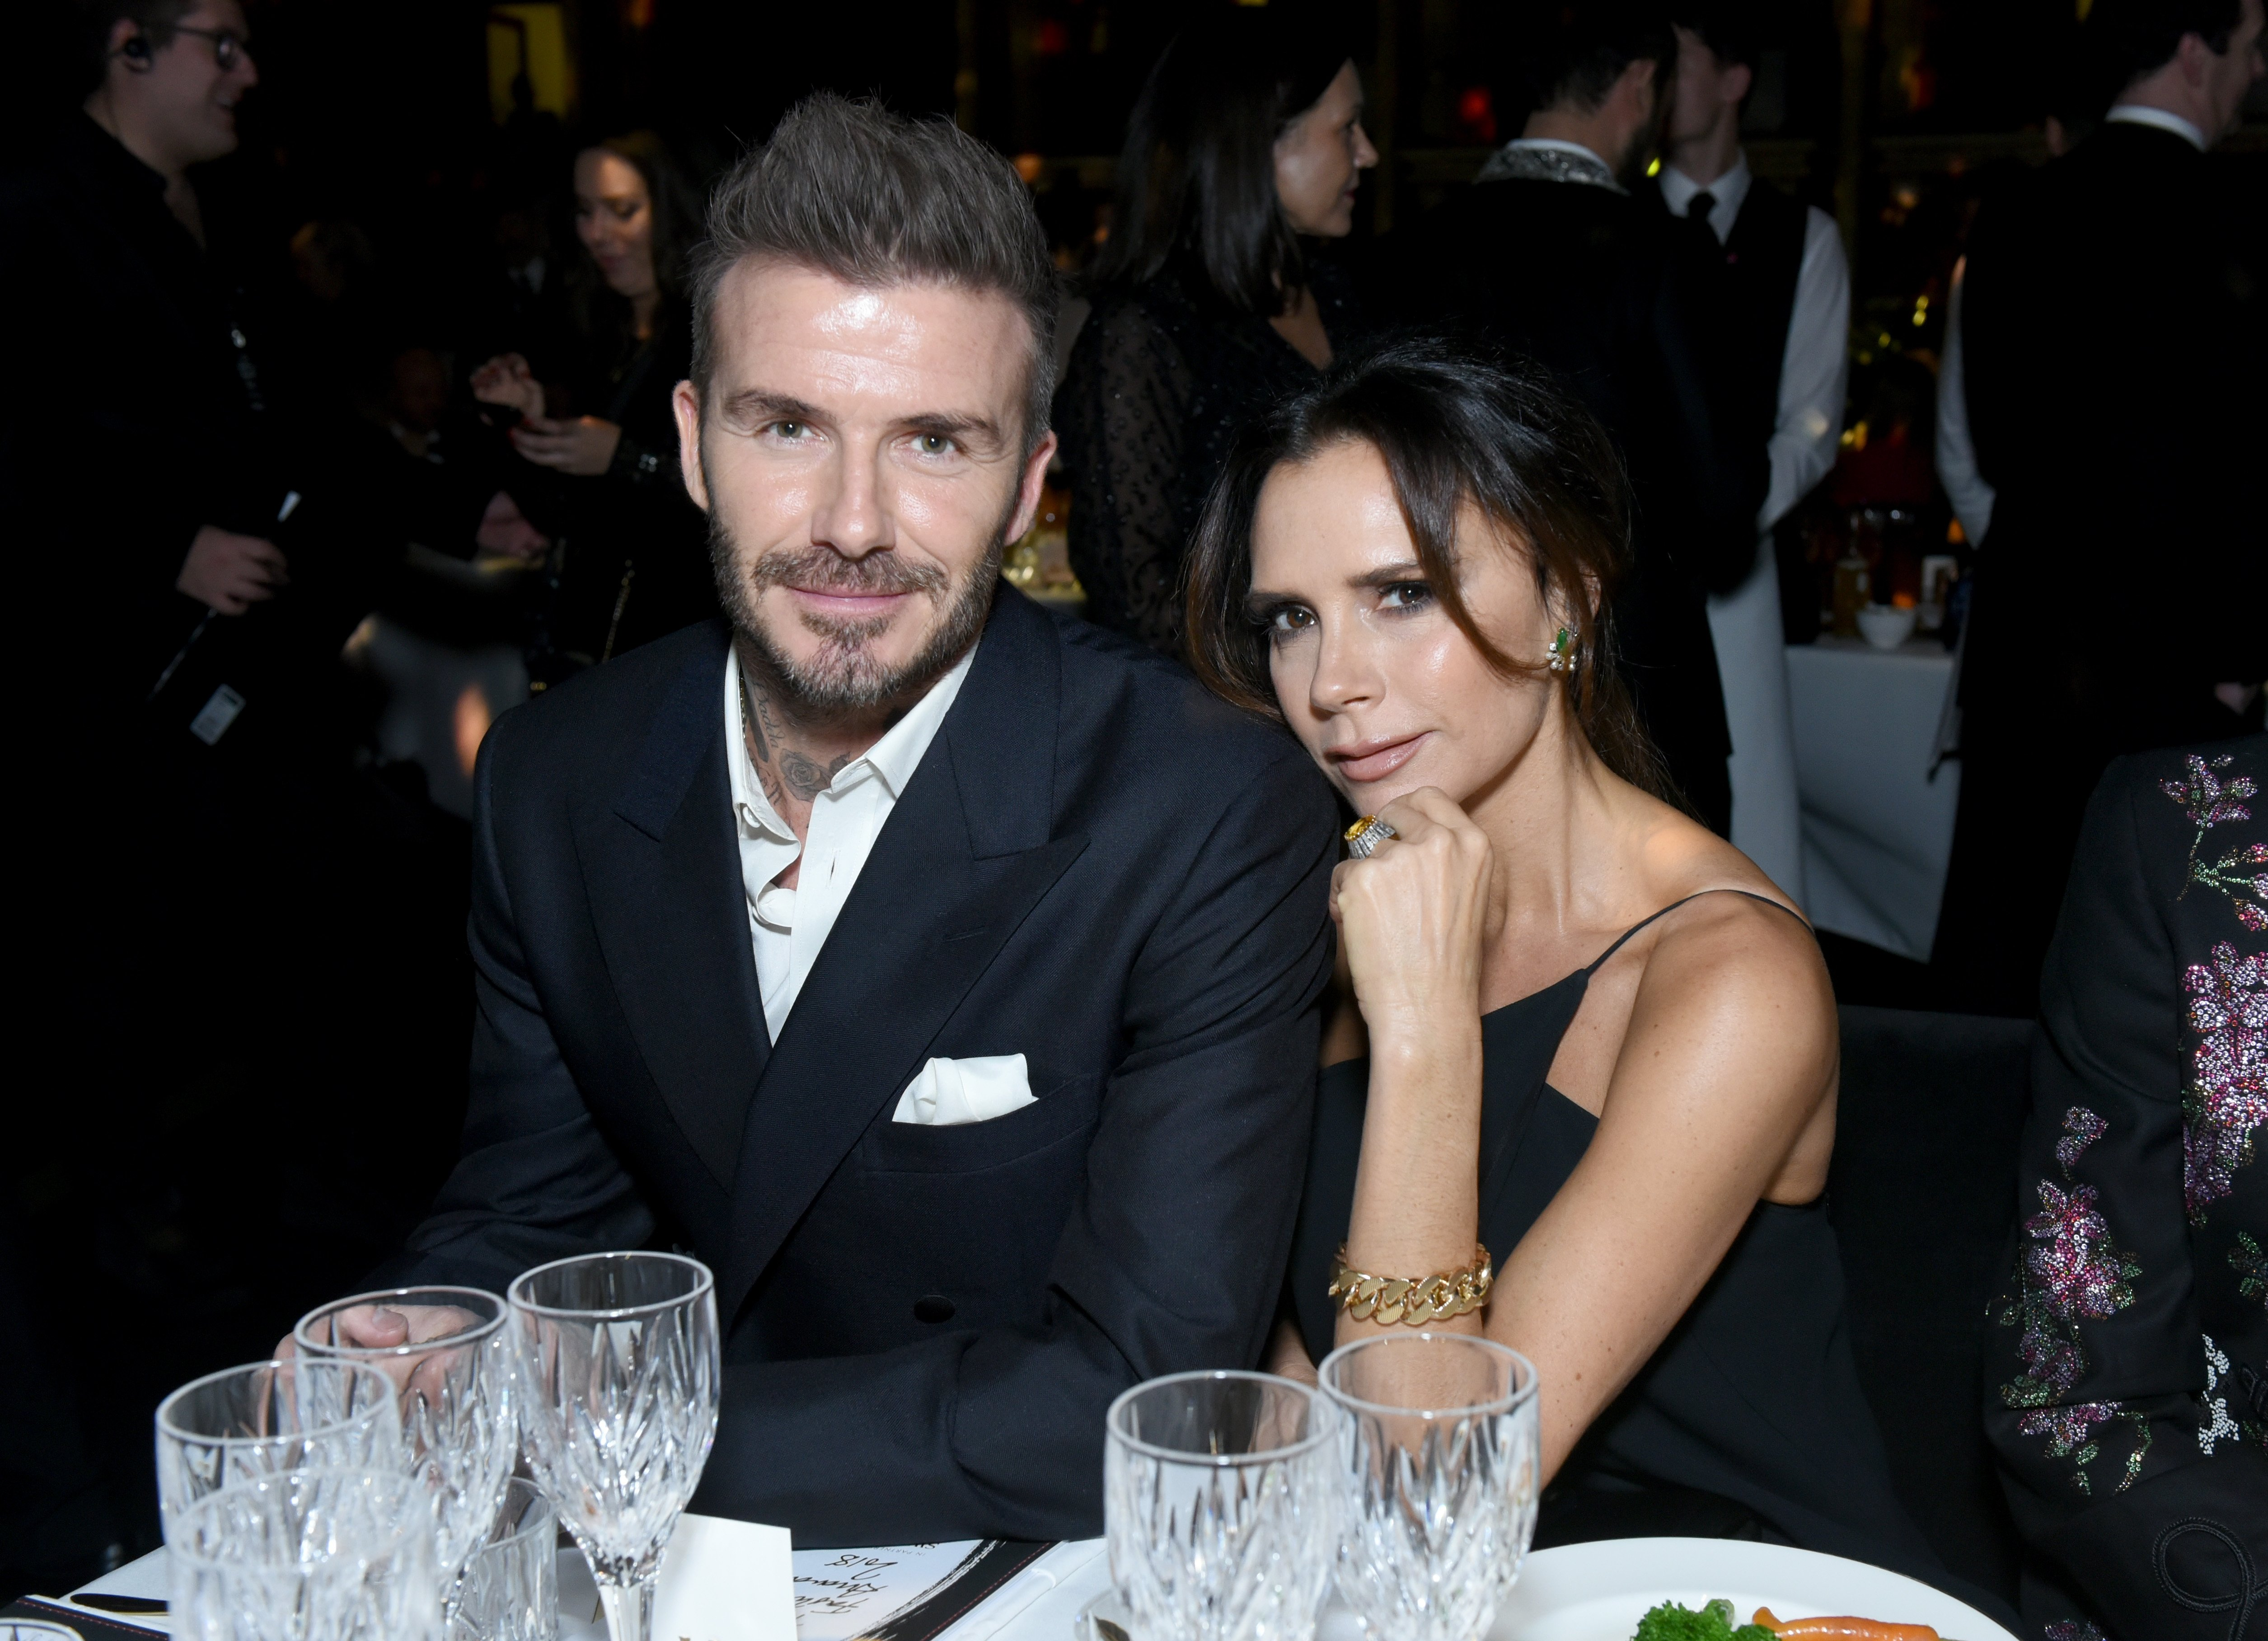 David Beckham and Victoria Beckham attend The Fashion Awards on December 10, 2018, in London, England. | Source: Getty Images.